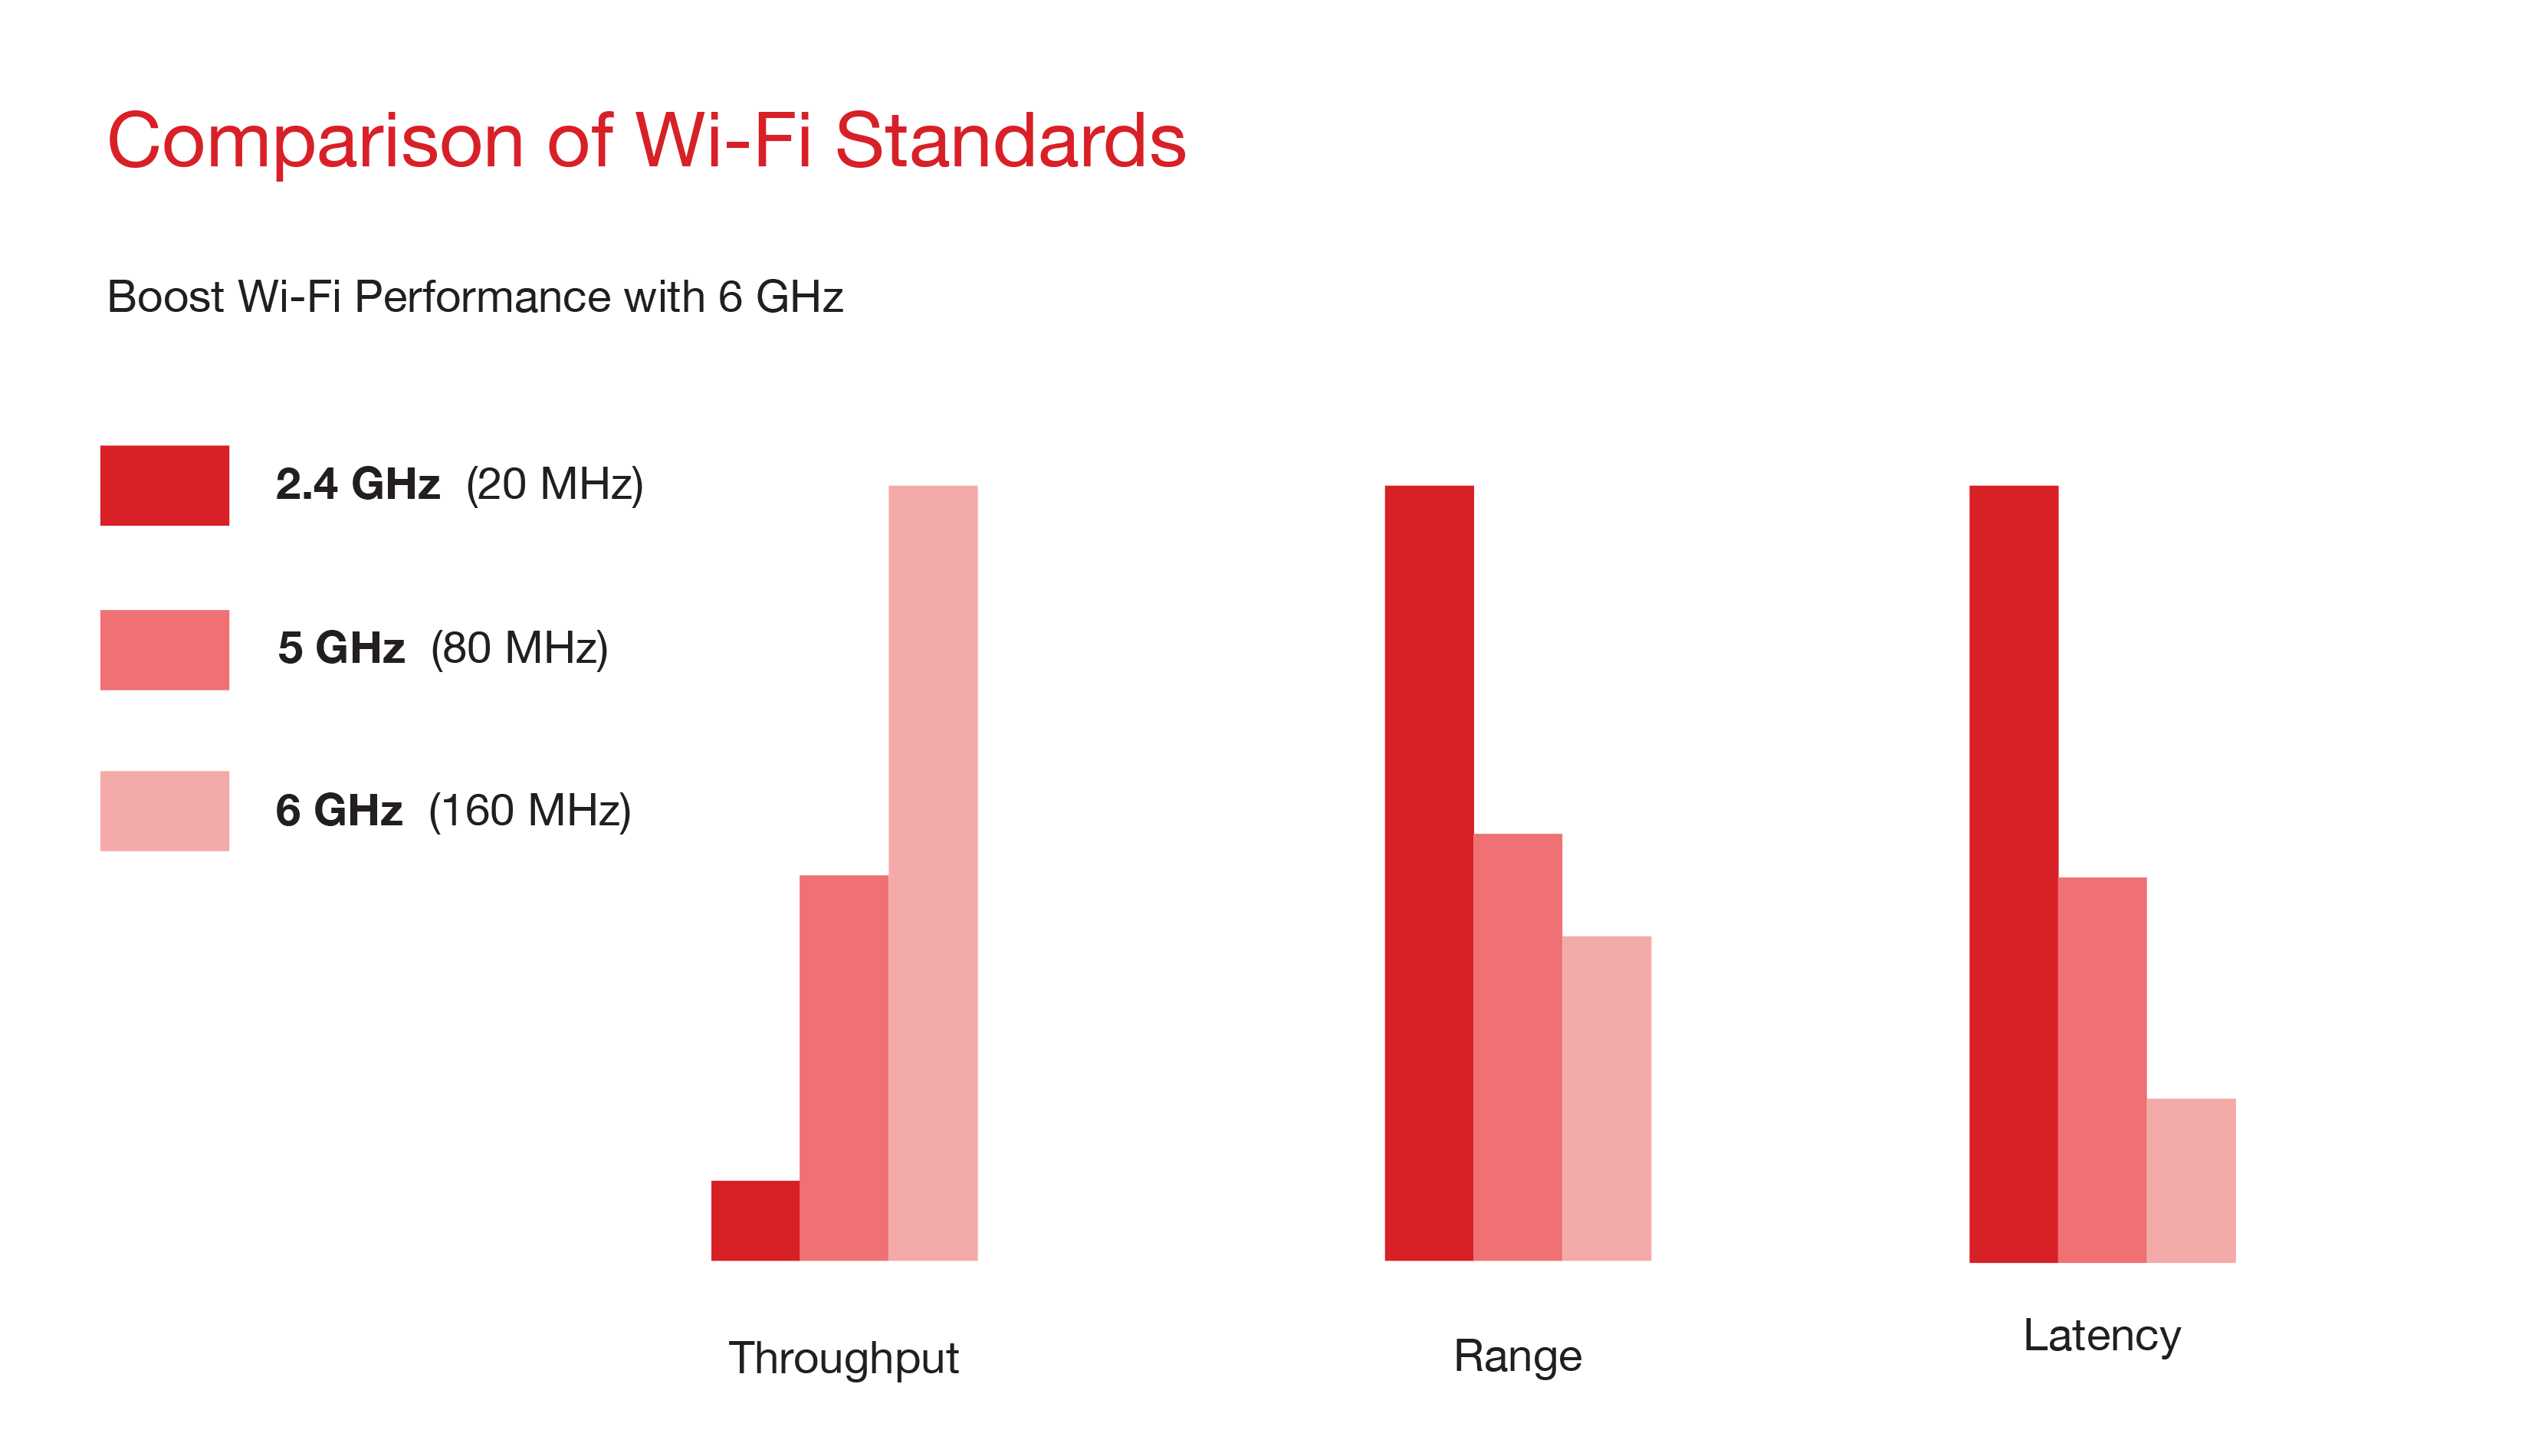 Comparing Wi-Fi standards